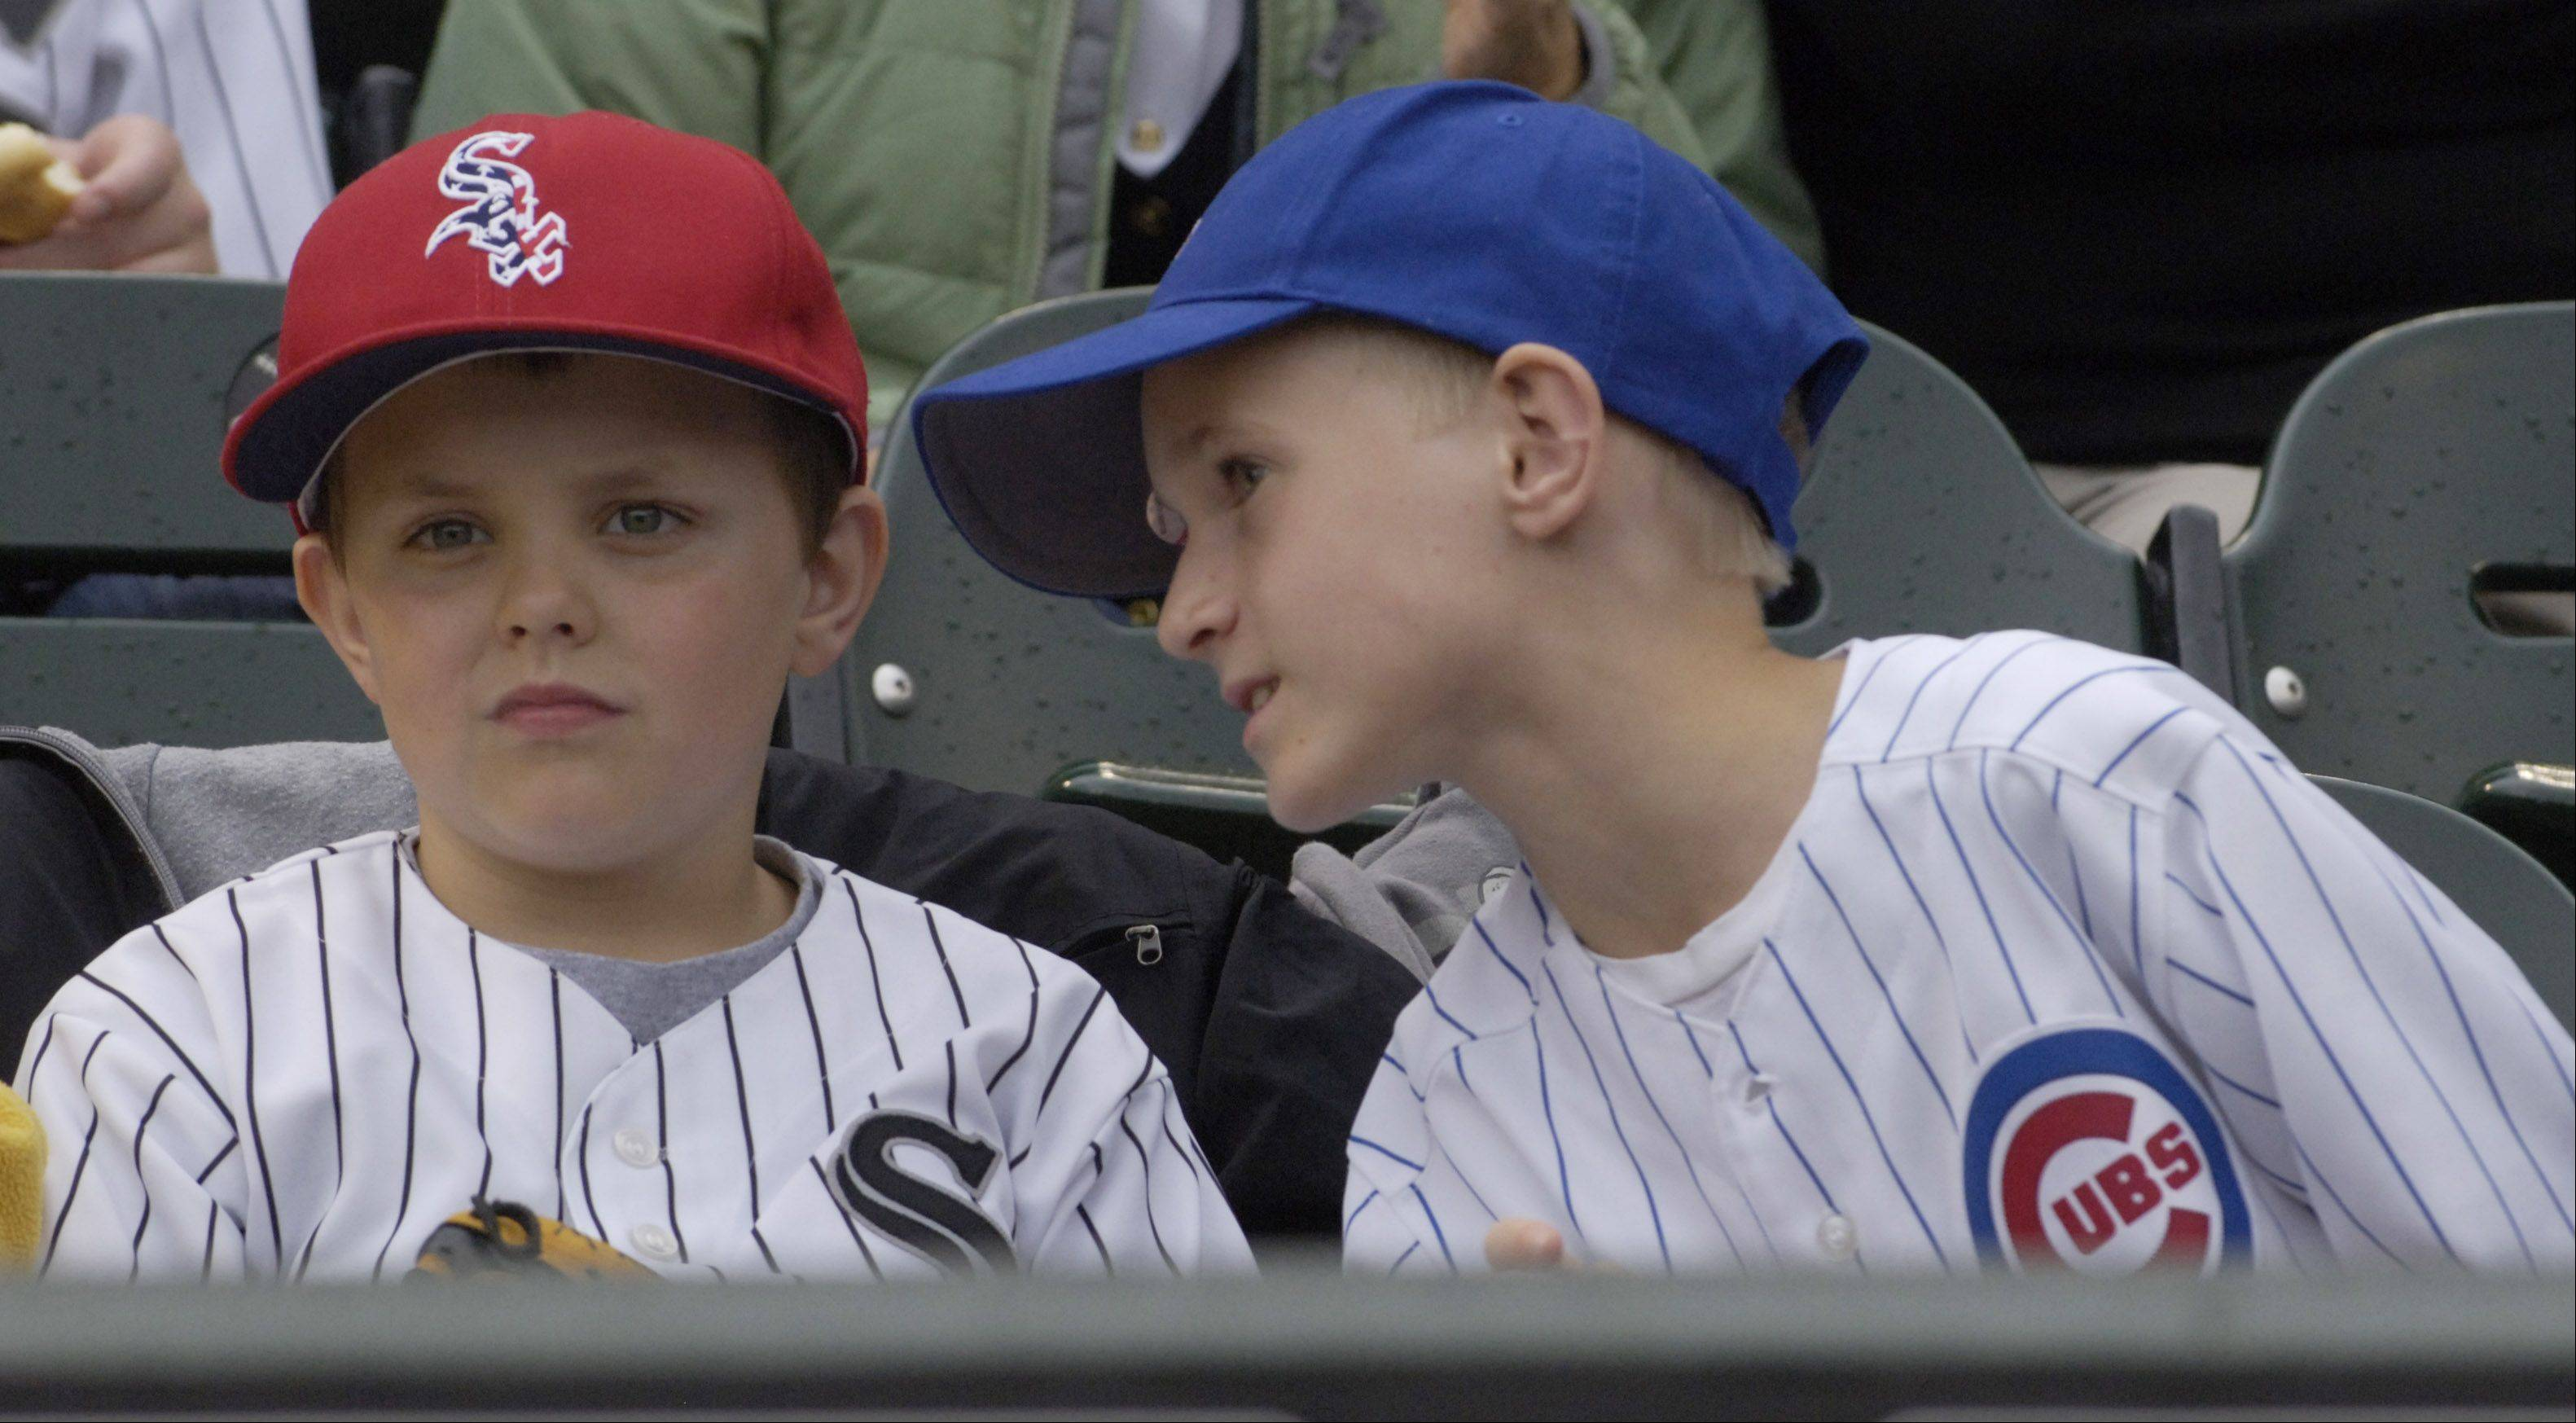 Young Sox and Cubs fans chat while seated together at Wednesday's game at U.S. Cellular Field.